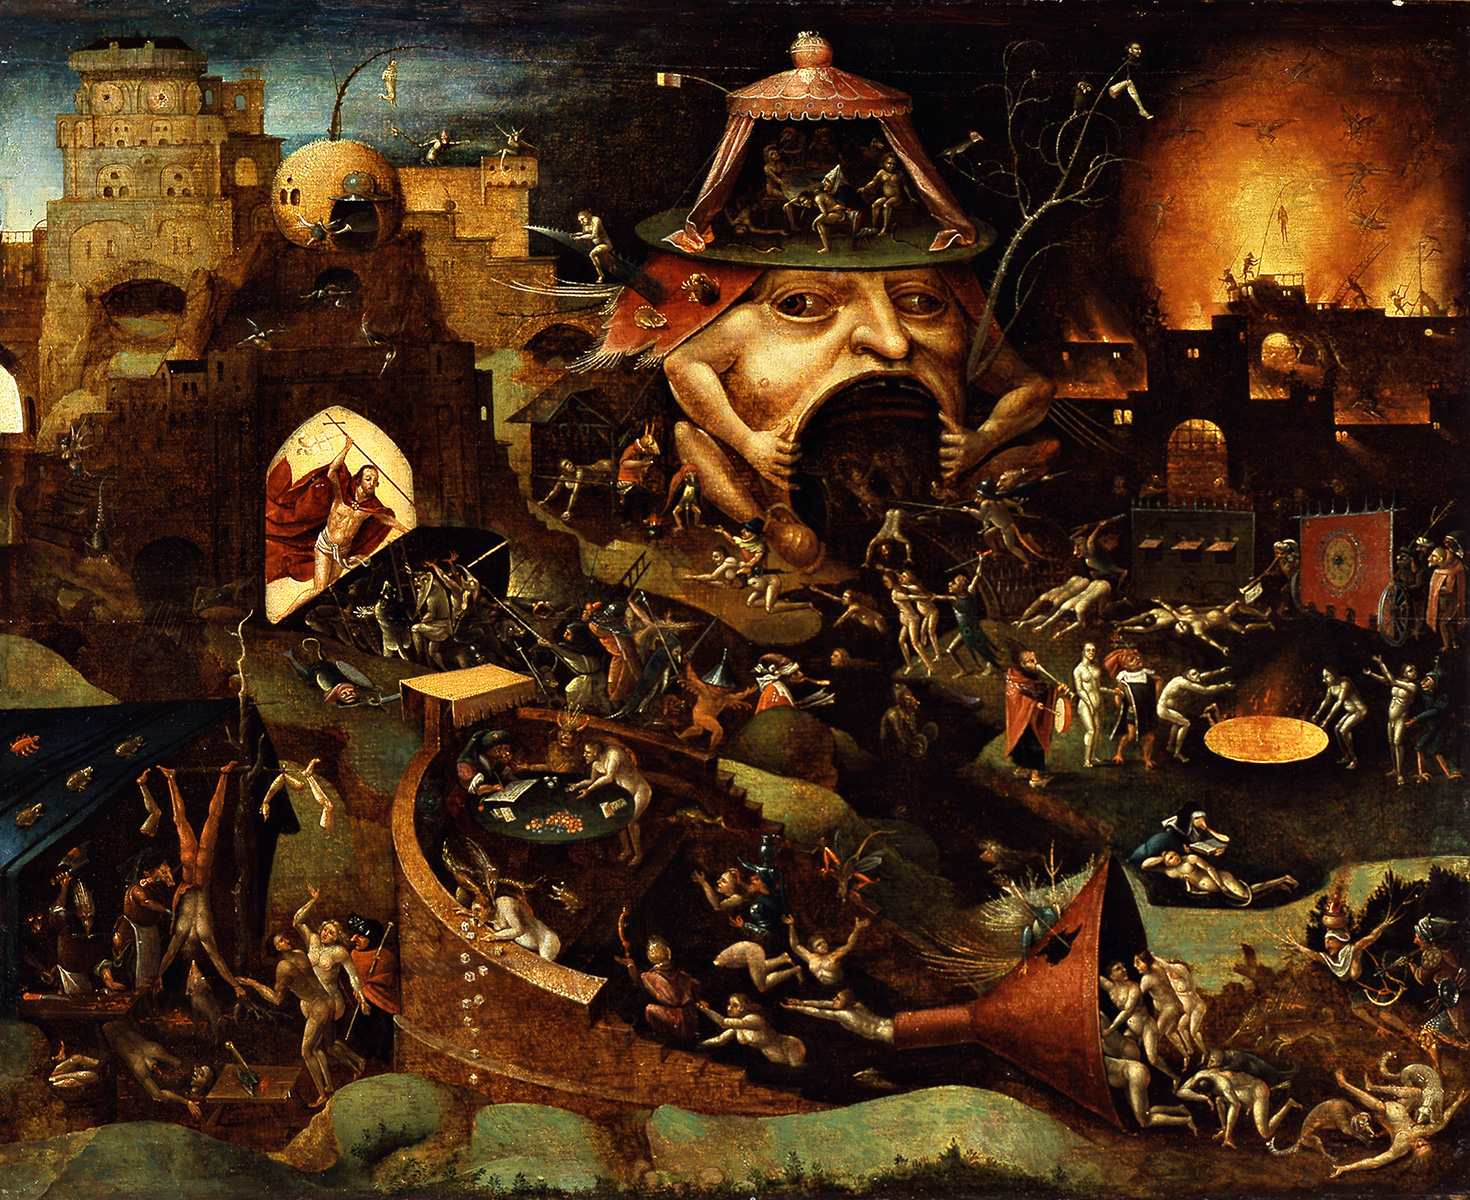 Follower_of_Jheronimus_Bosch_Christ_in_Limbo